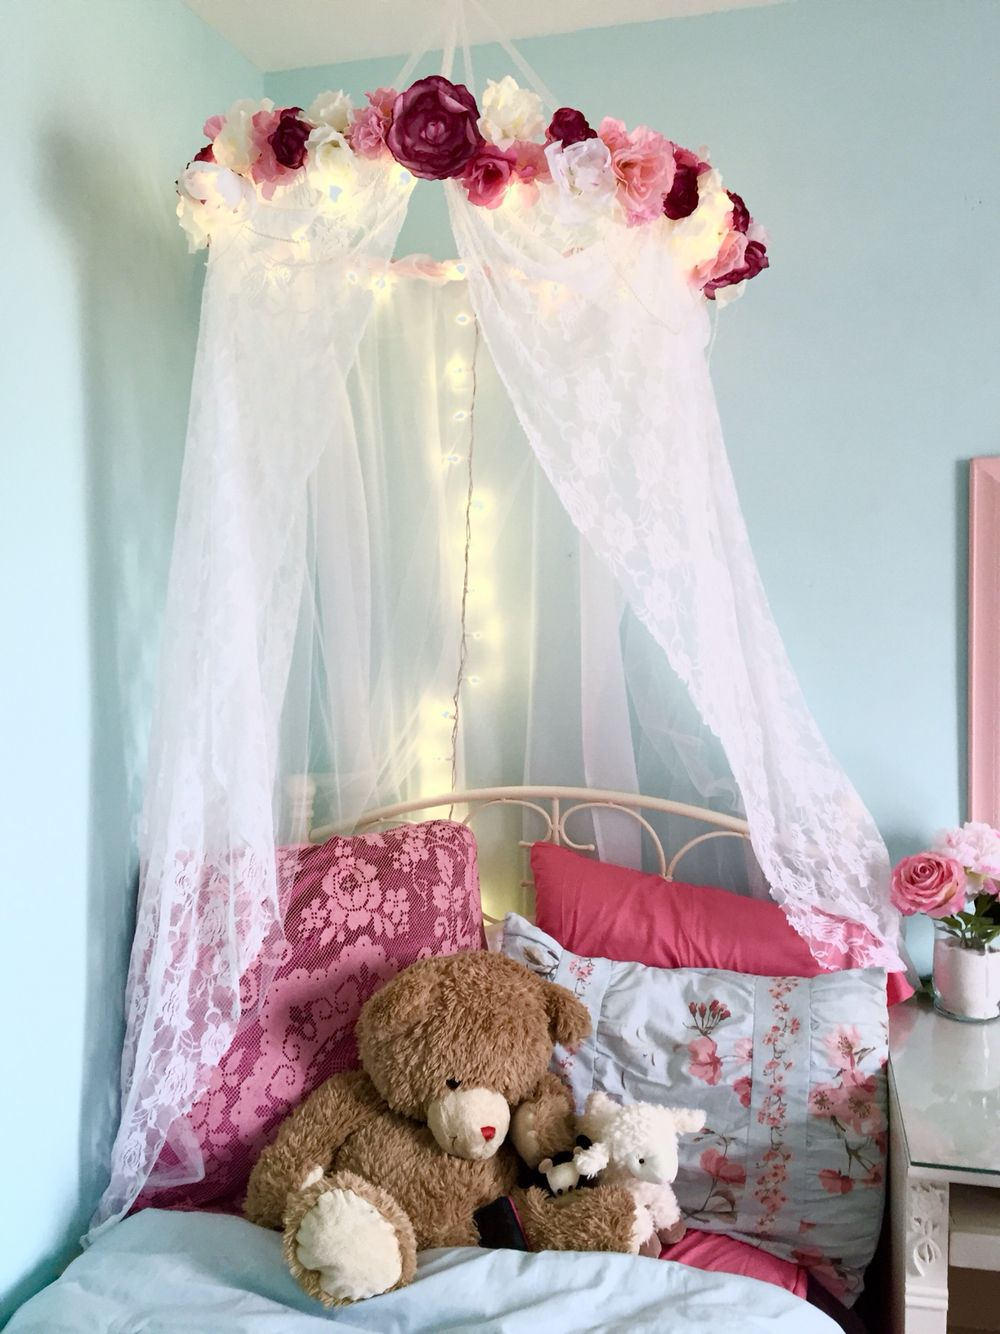 Girls bed canopy ideas - Pink And Blue Girl S Room With Canopy And Tree Mural Tiny Shabby Chic Bedroom